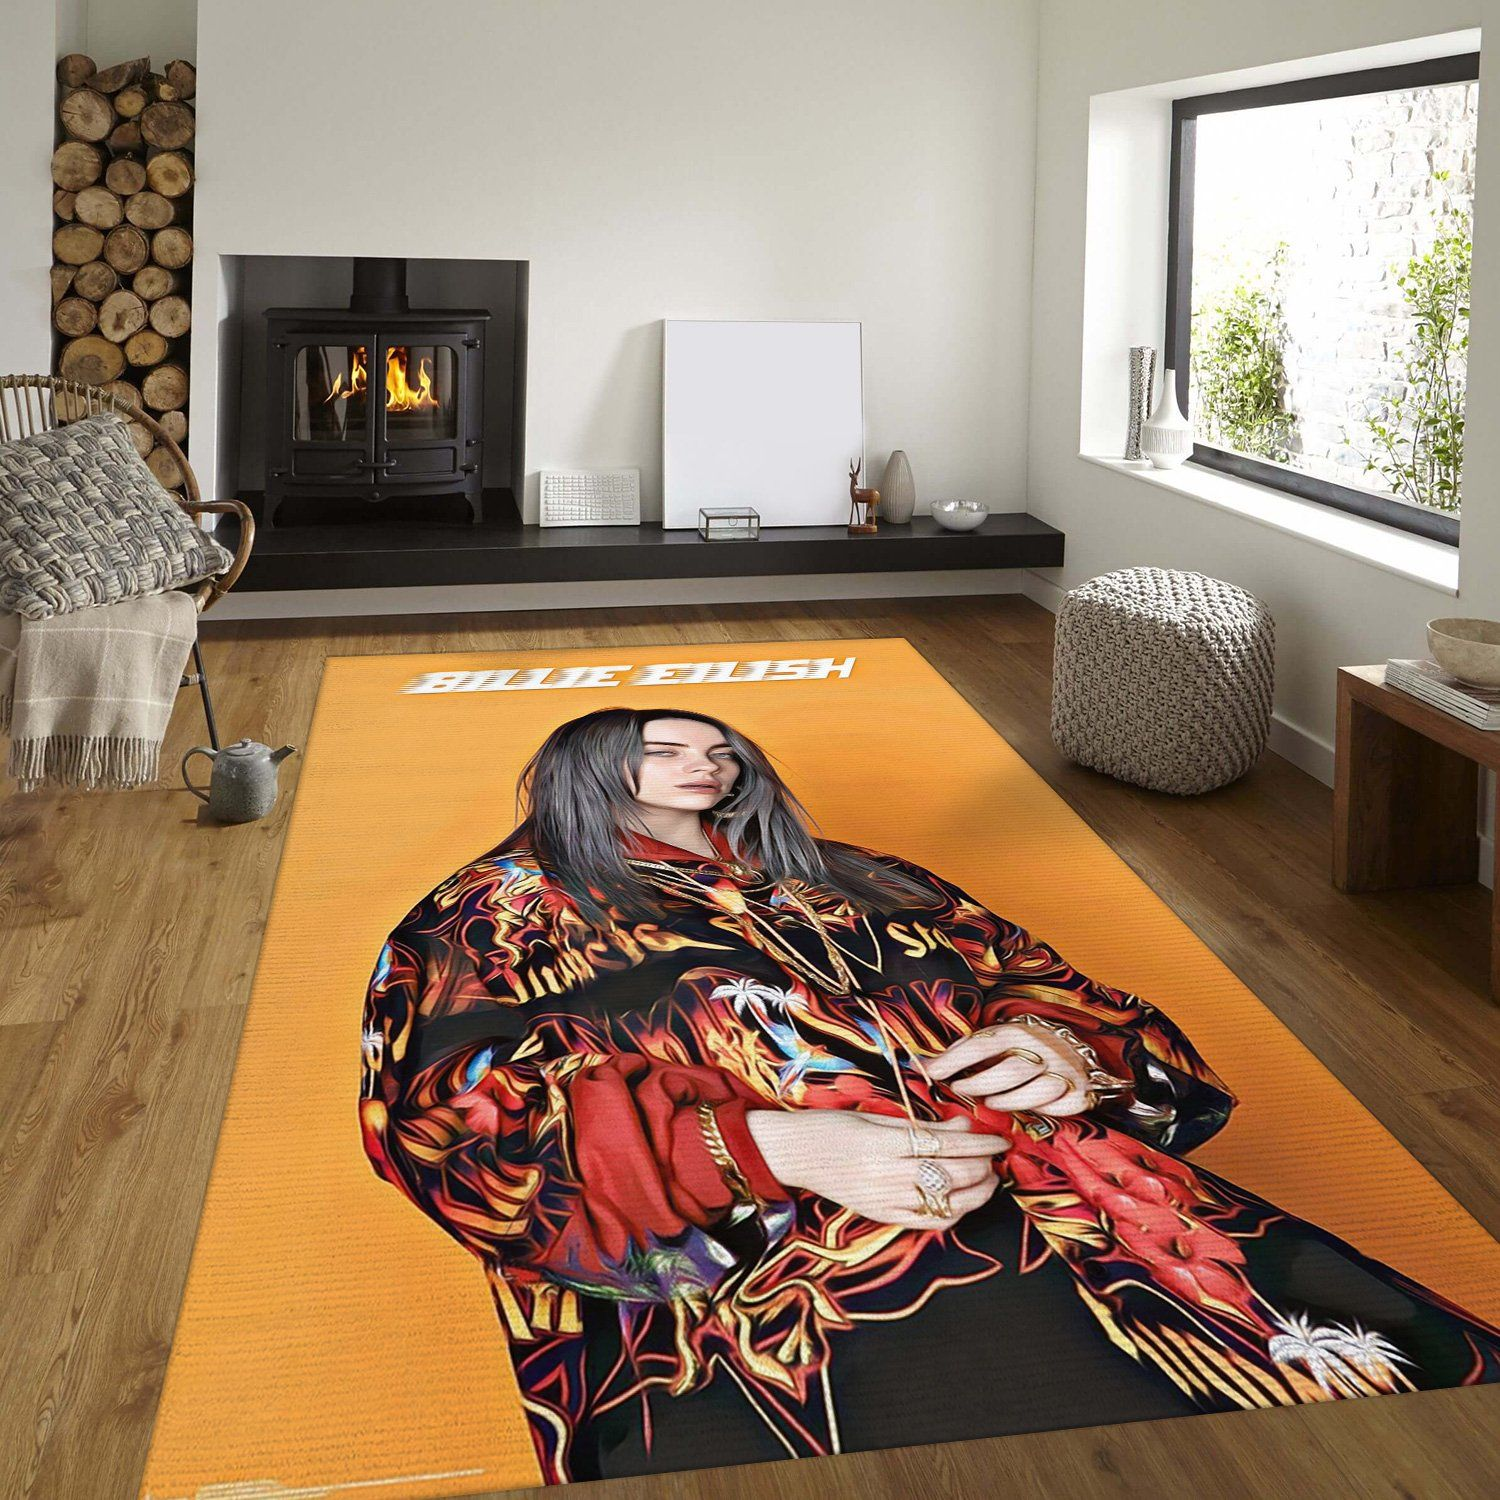 Billie Eilish Rug